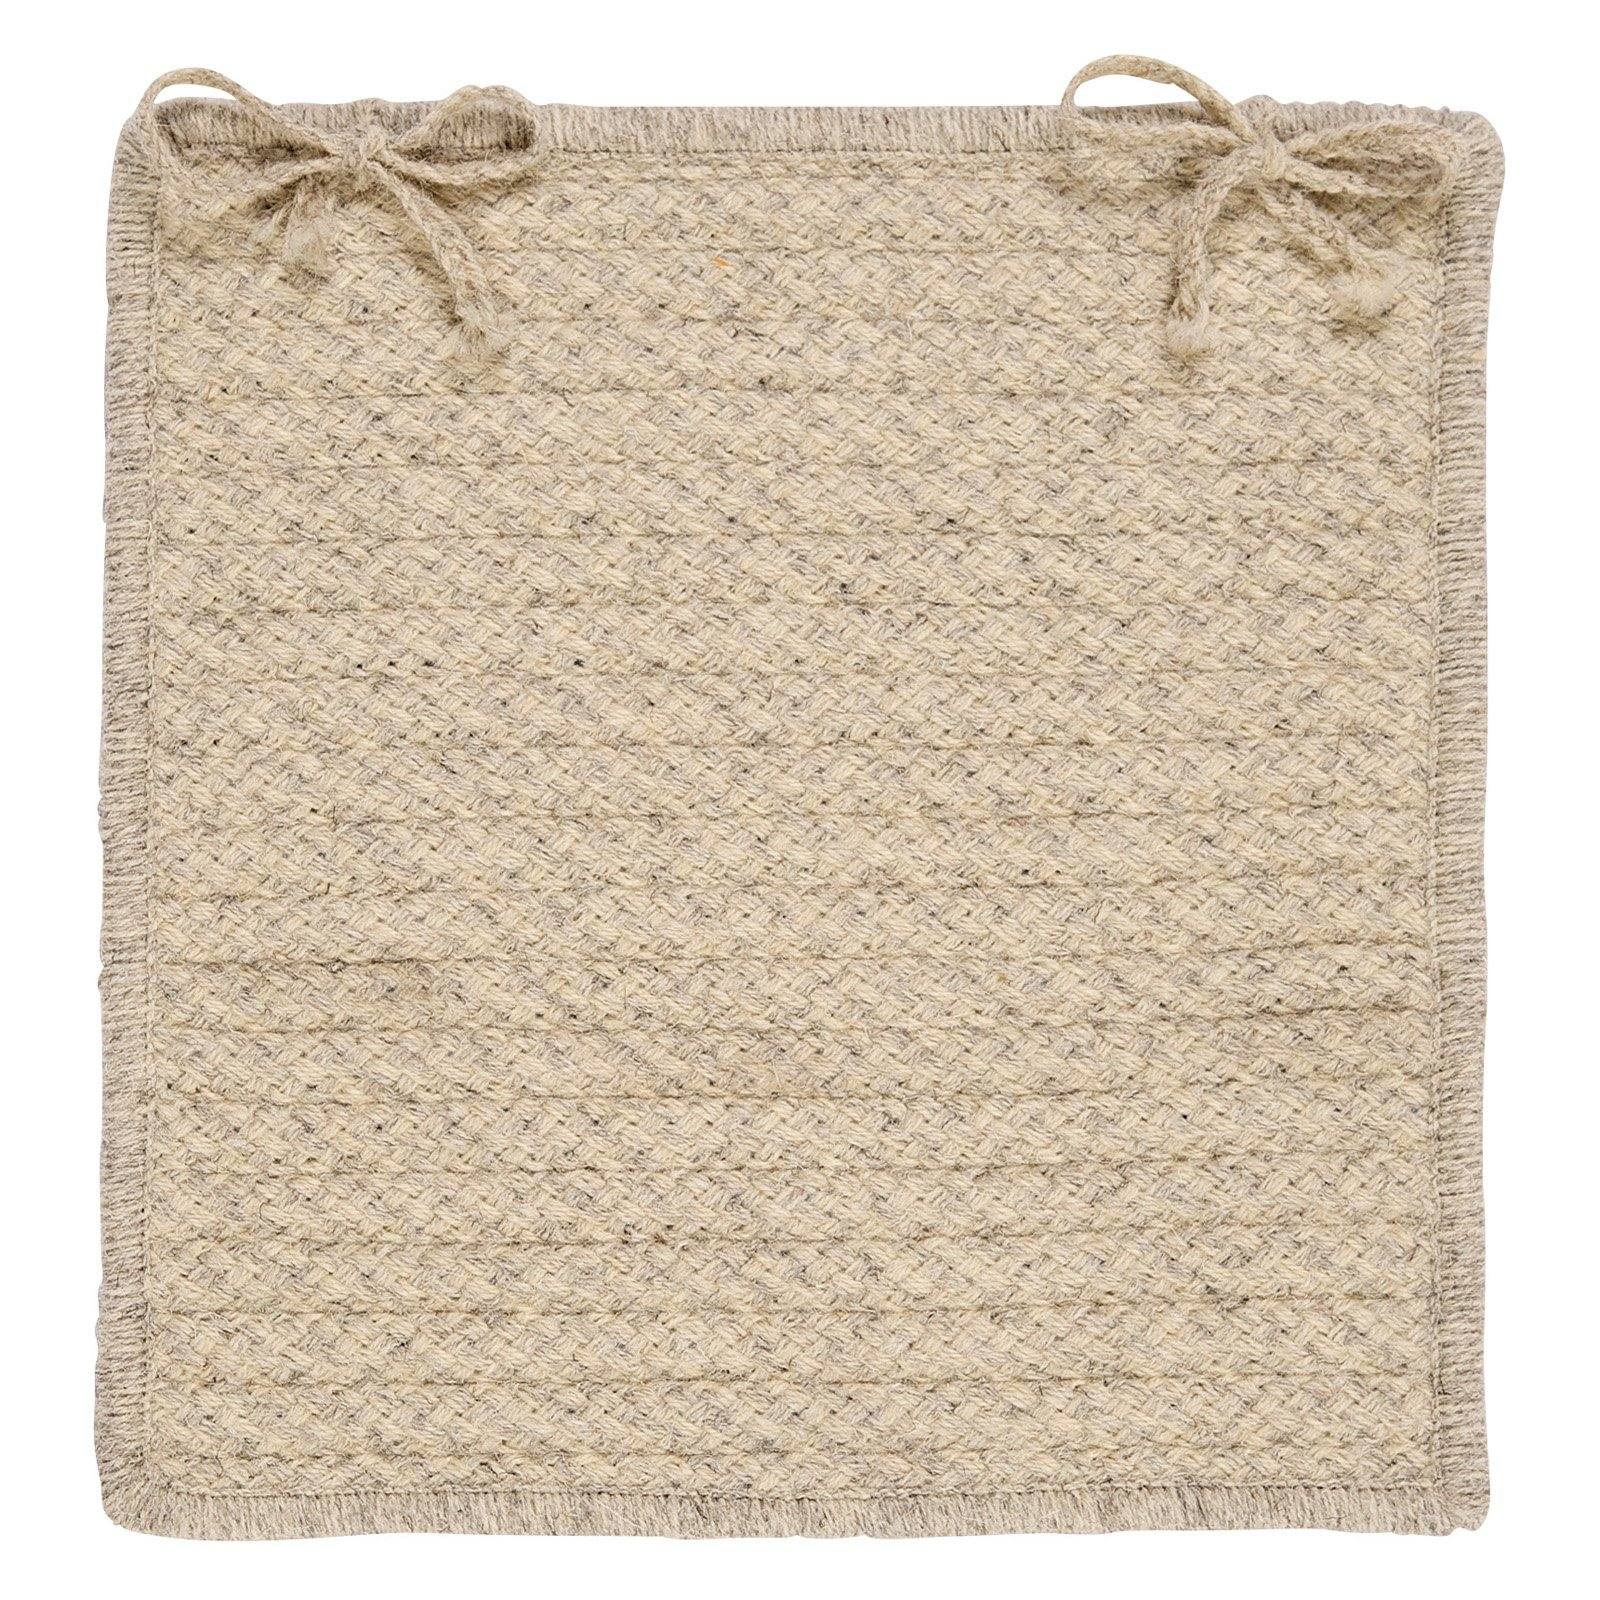 Colonial Mills HD31A015X015S Natural Wool Houndstooth 15 in. Cream Chair Pad - Set of 4